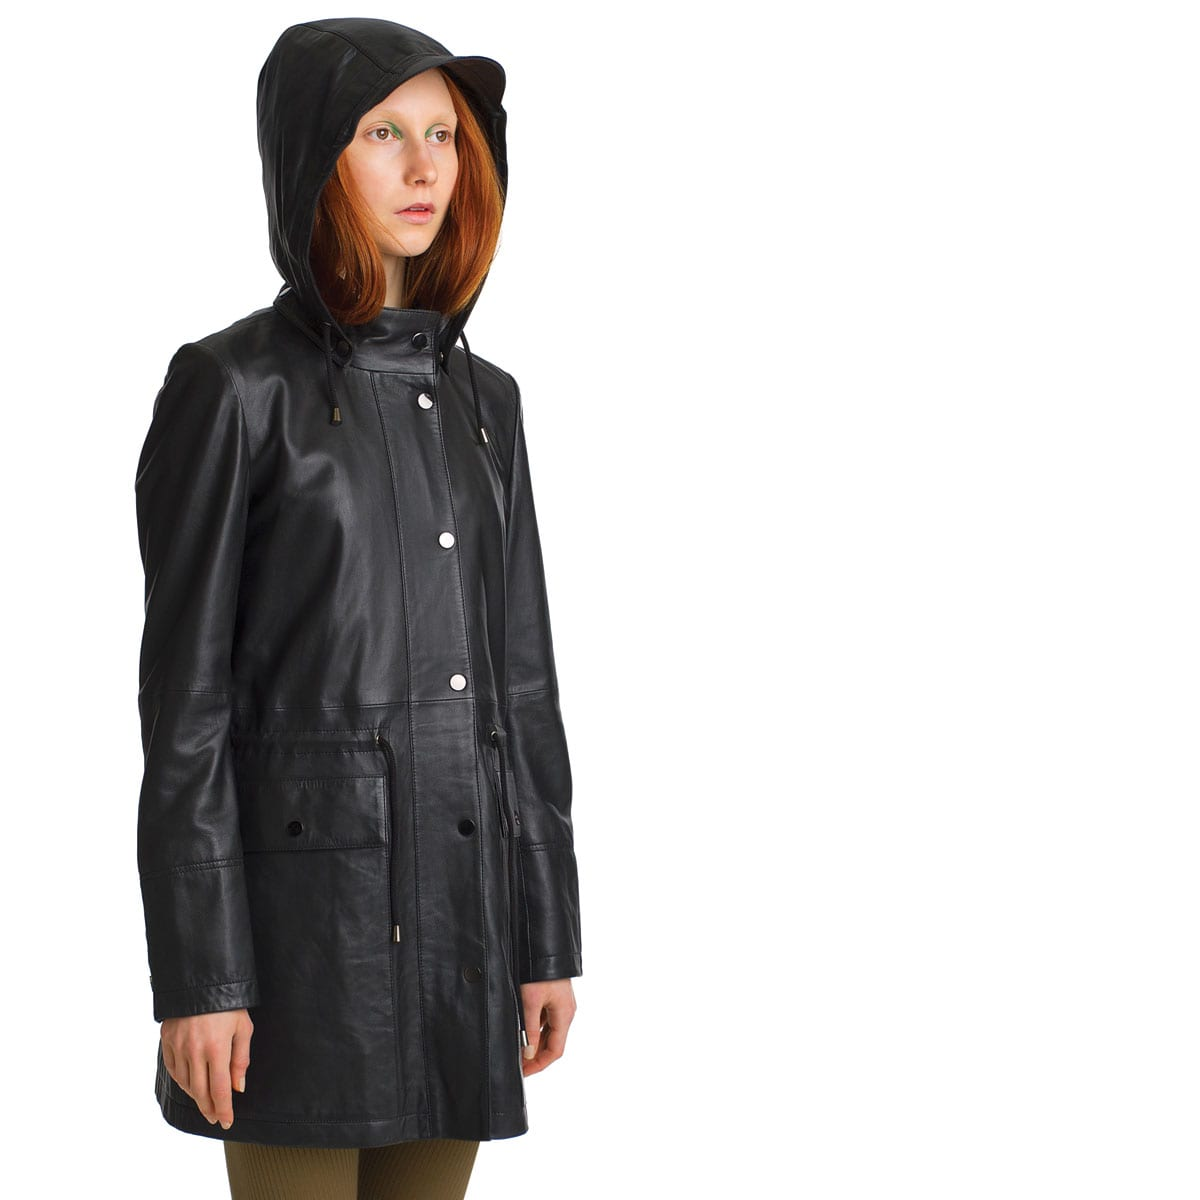 Women's LUMI Leather Anorak, in black, is made of buttery soft full grain, trough dyed sheep leather.